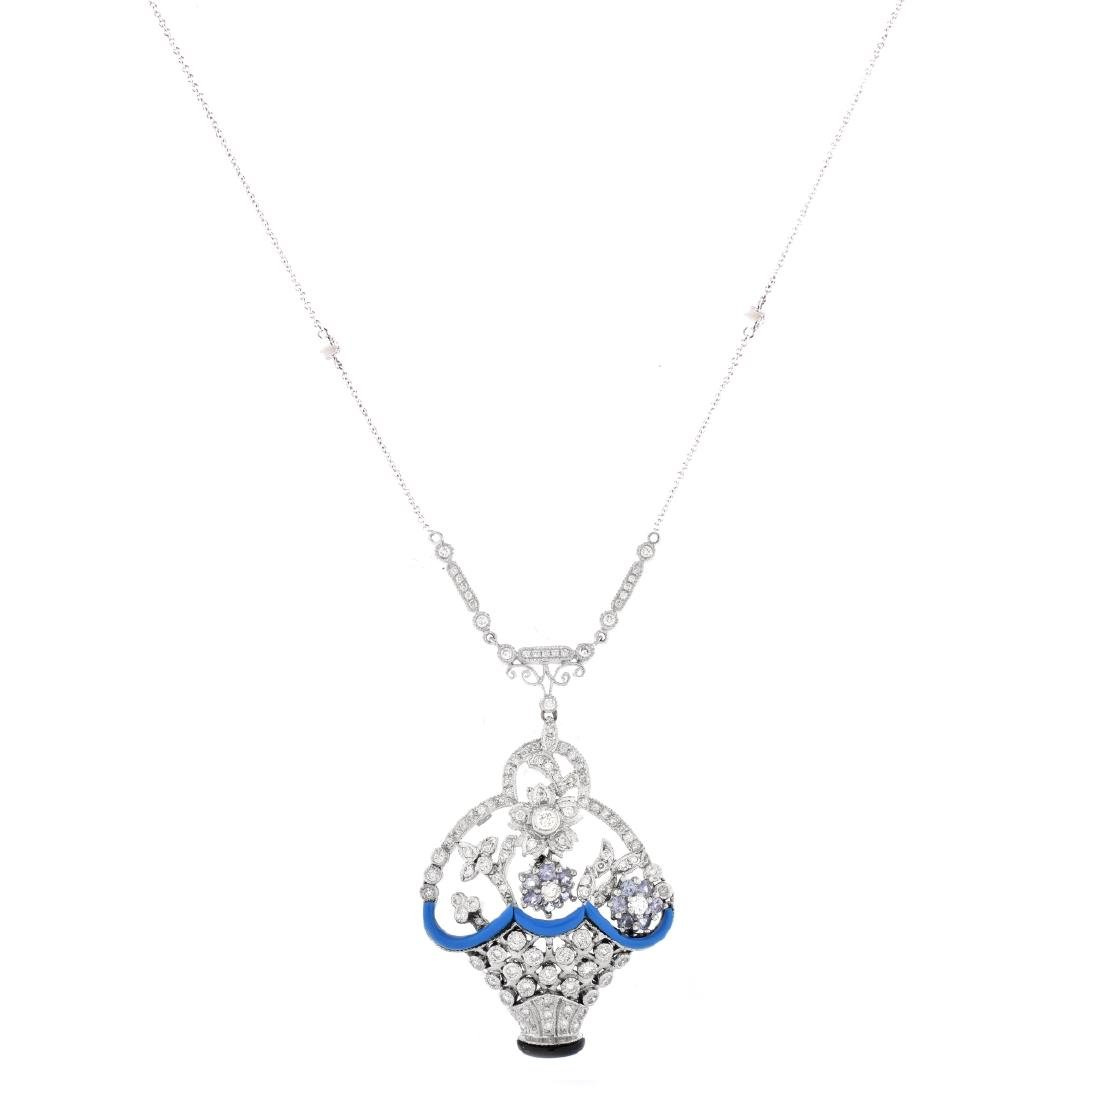 Diamond, Sapphire and 18K Gold Necklace